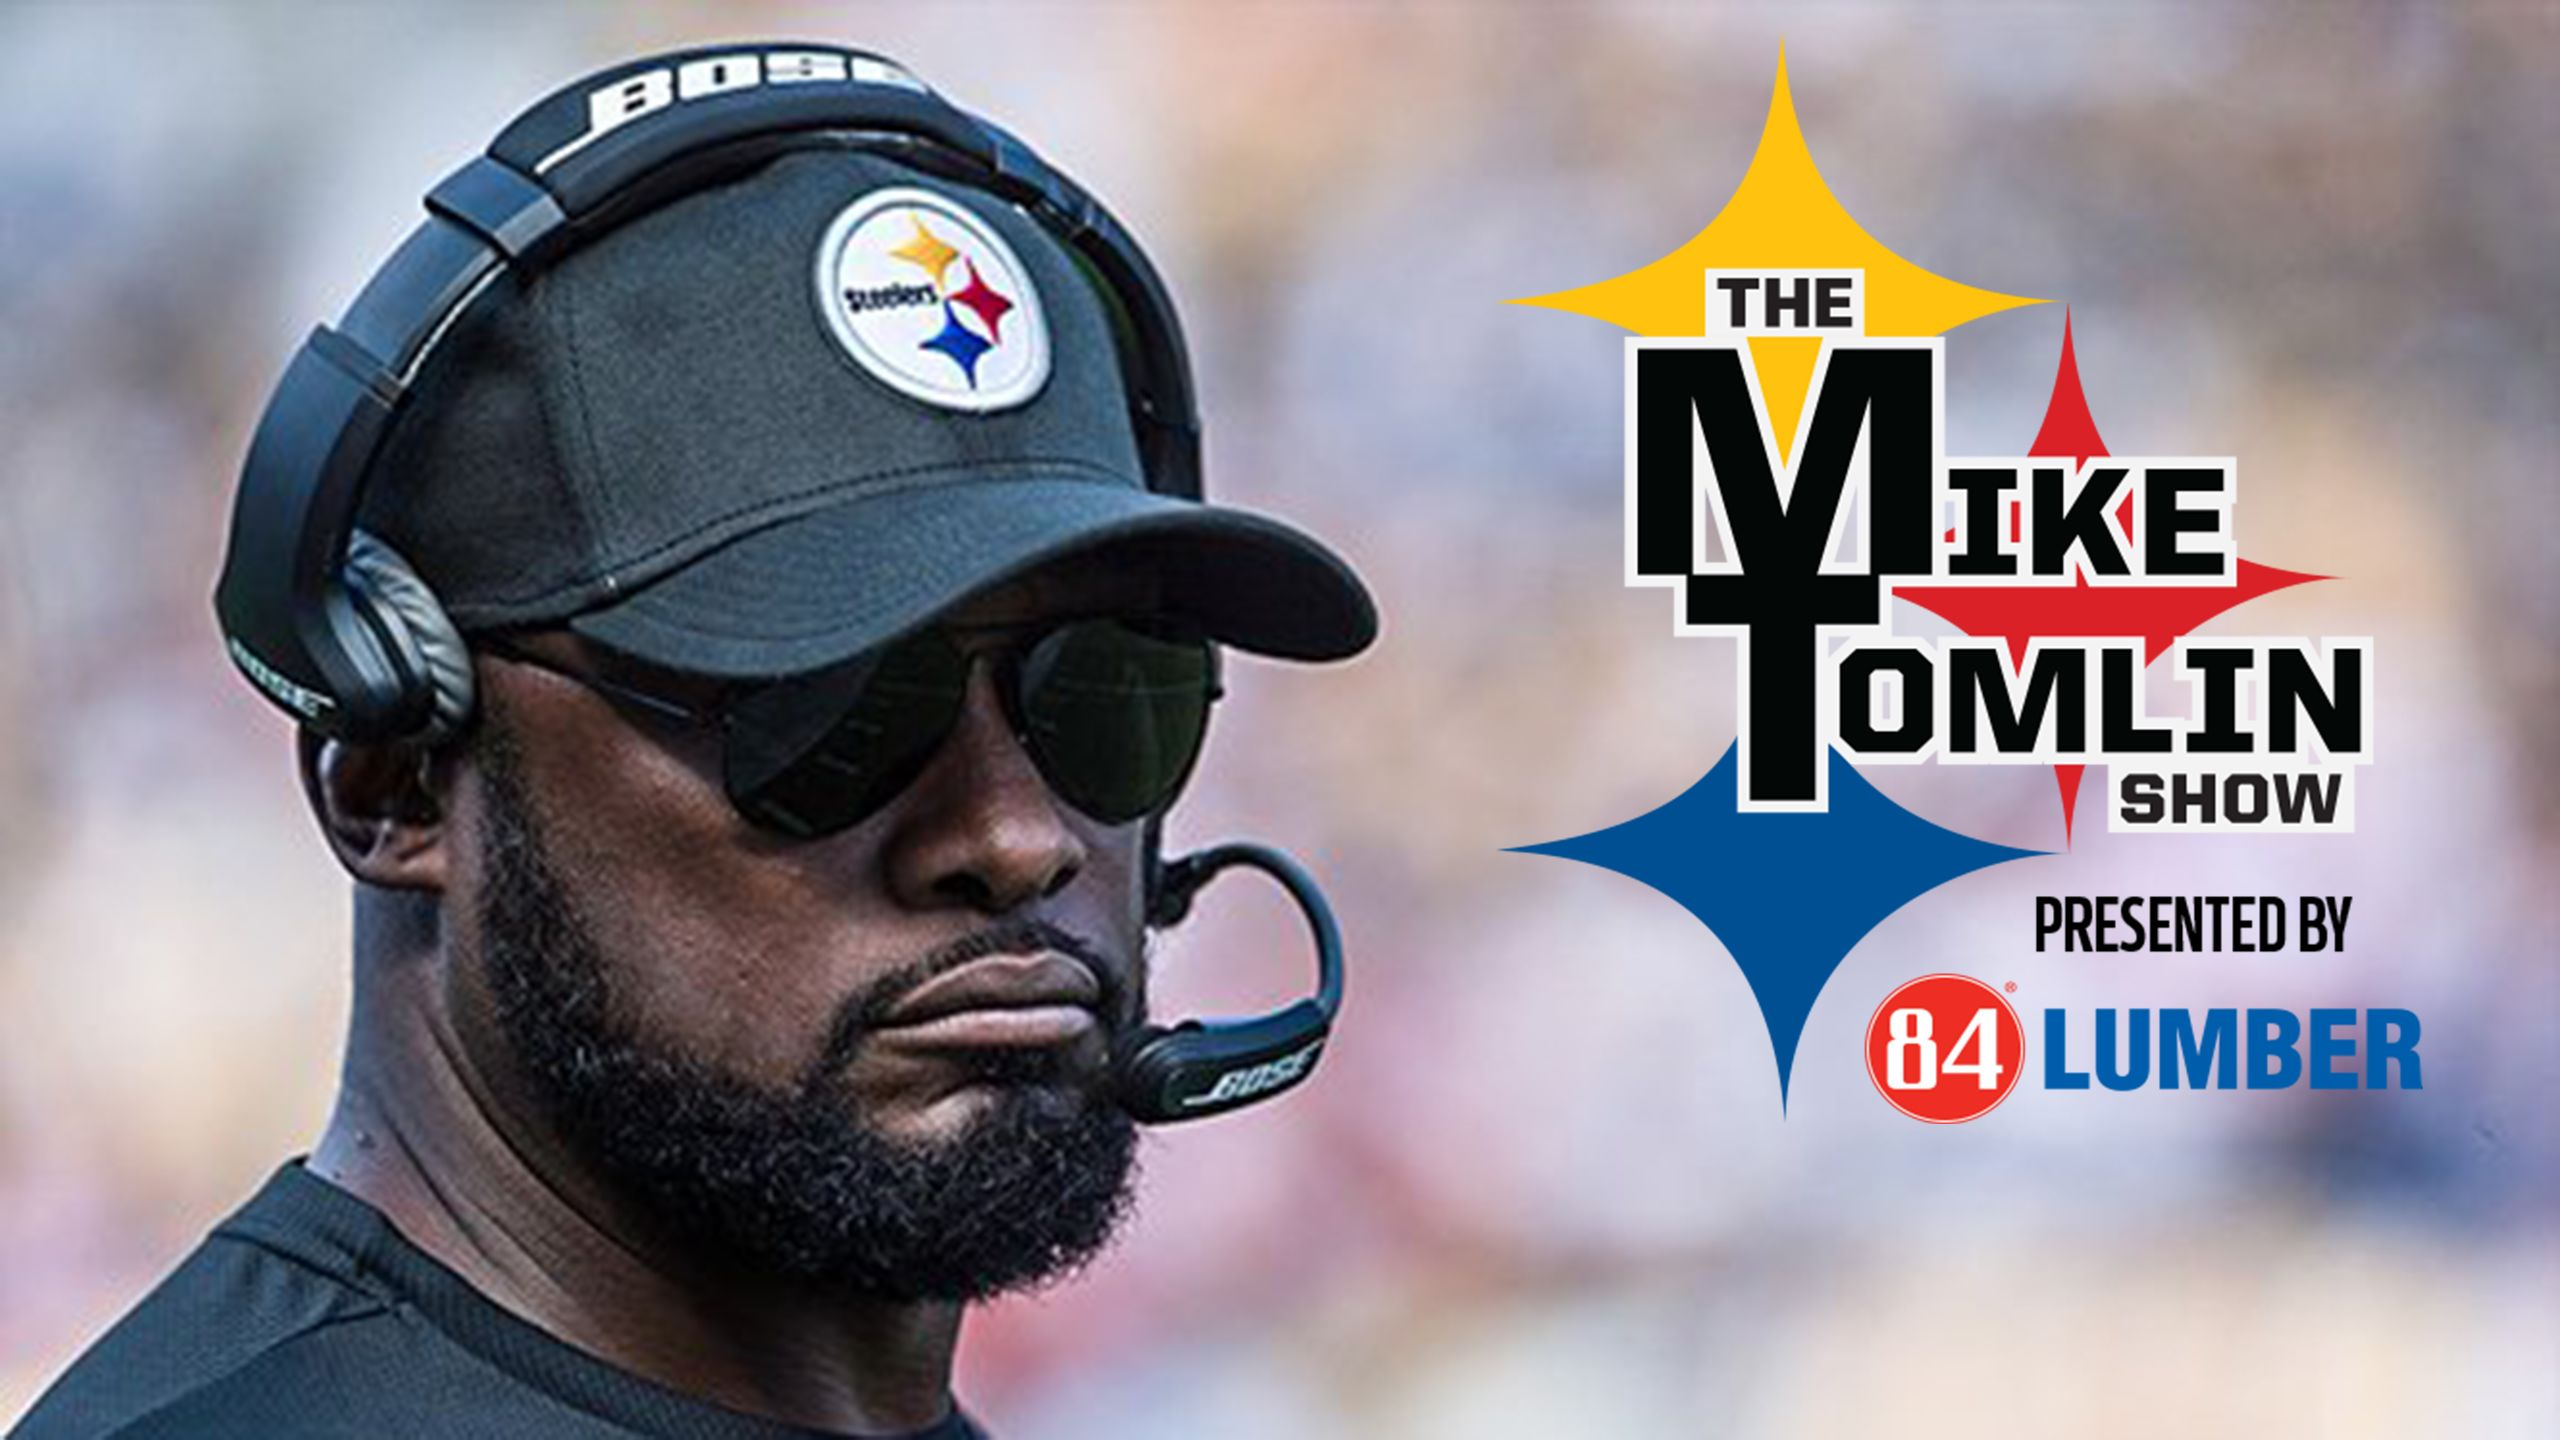 The Mike Tomlin Show